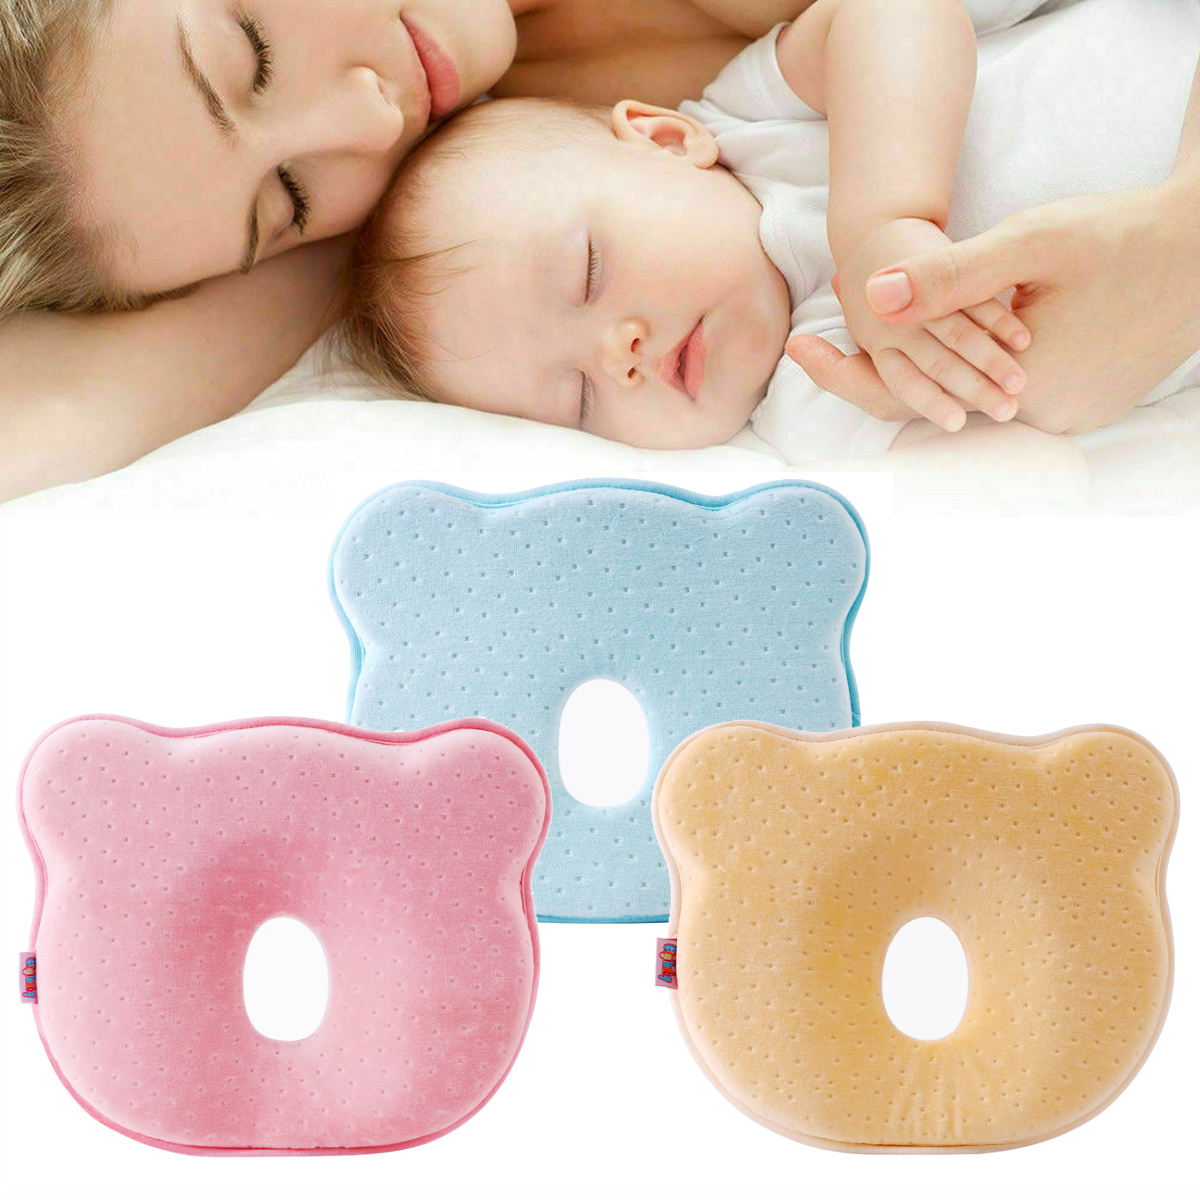 Baby Pillow Soft Infant Head Orthopedic Shaping Pillow Memory Foam Sleeping Cushion To Prevent Plagiocephaly Flat Head Syndrome Pink